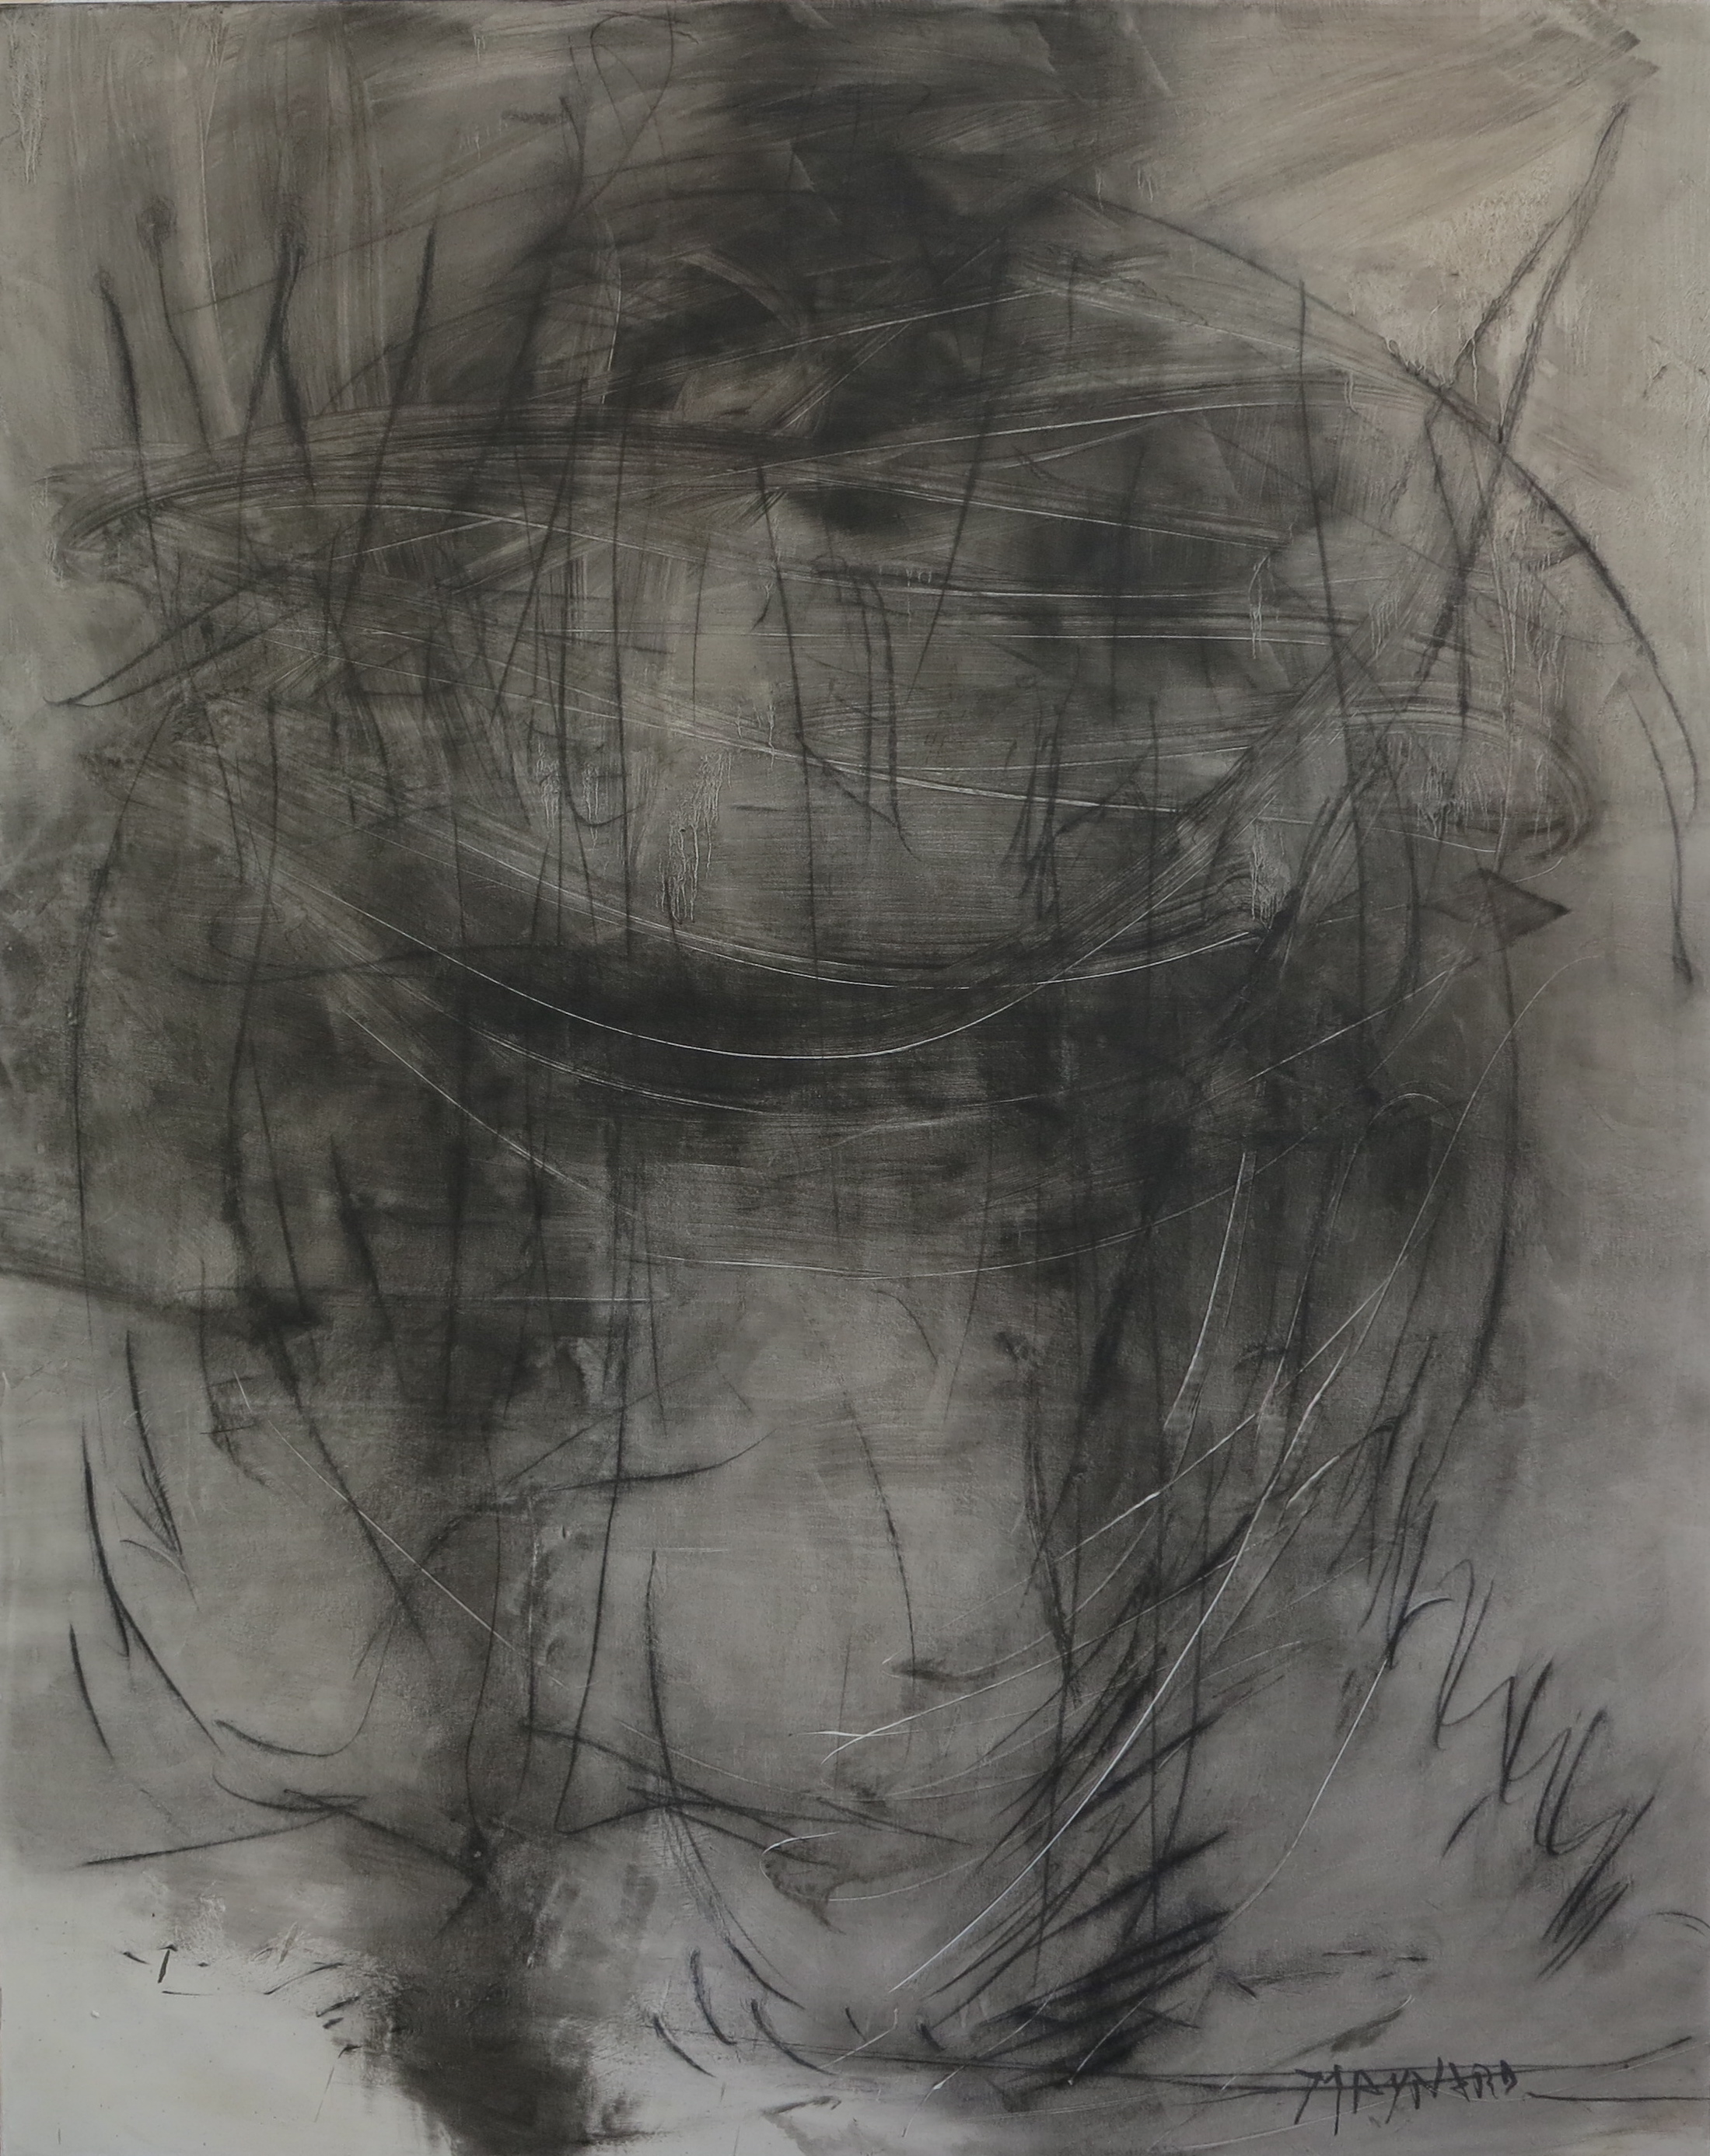 Oil and graphite on canvas - size 130 x 160 cm / 51 x 63 inches